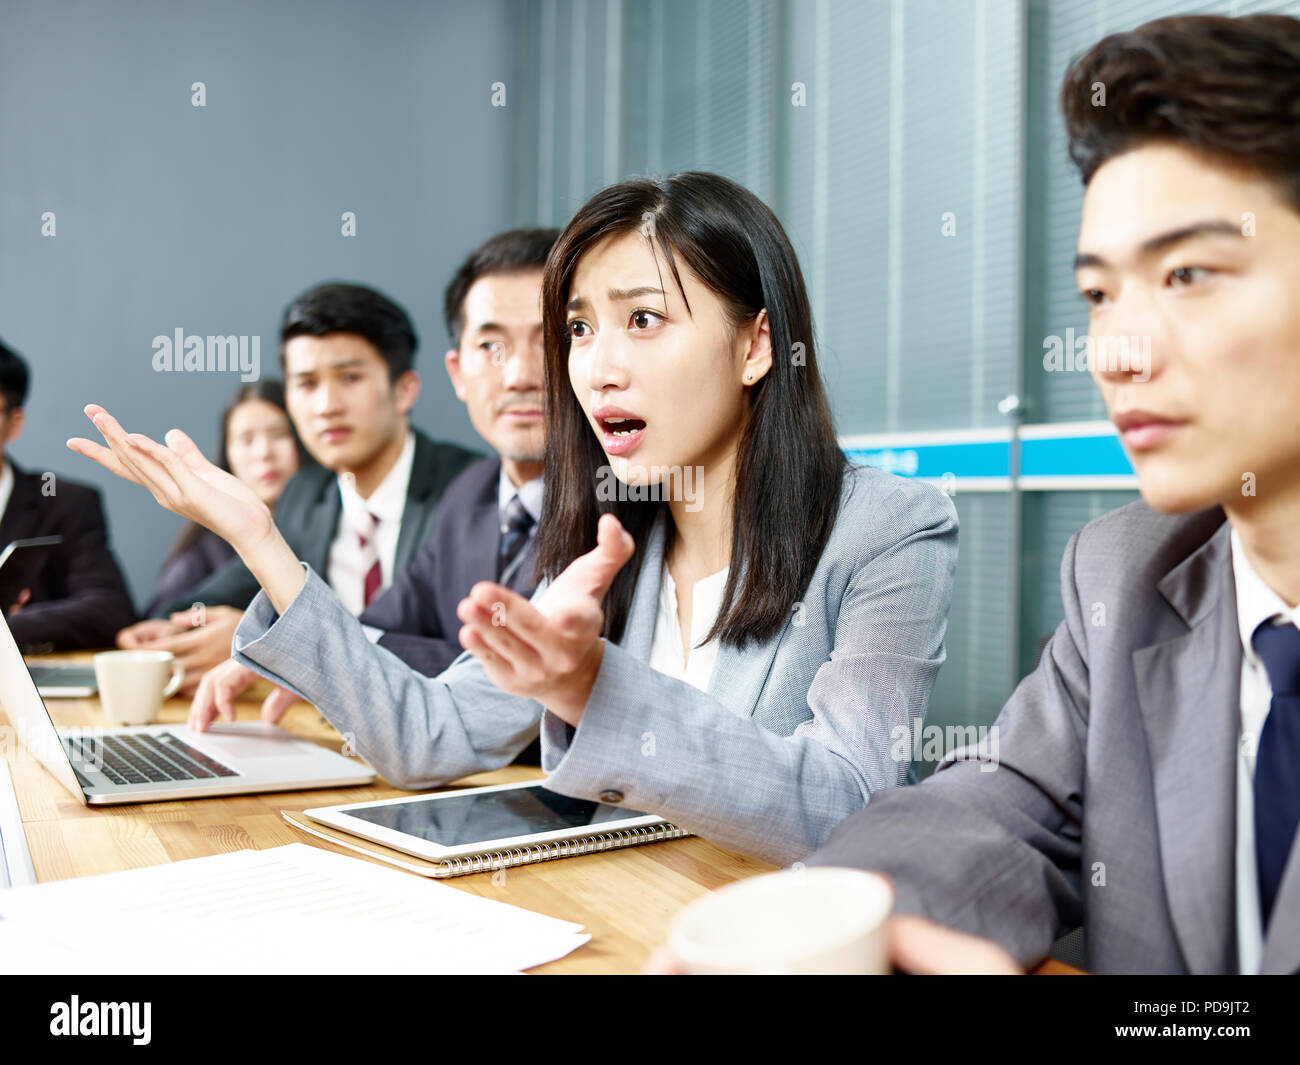 young asian business woman executive engaging in a heated discussion during meeting. - Stock Image